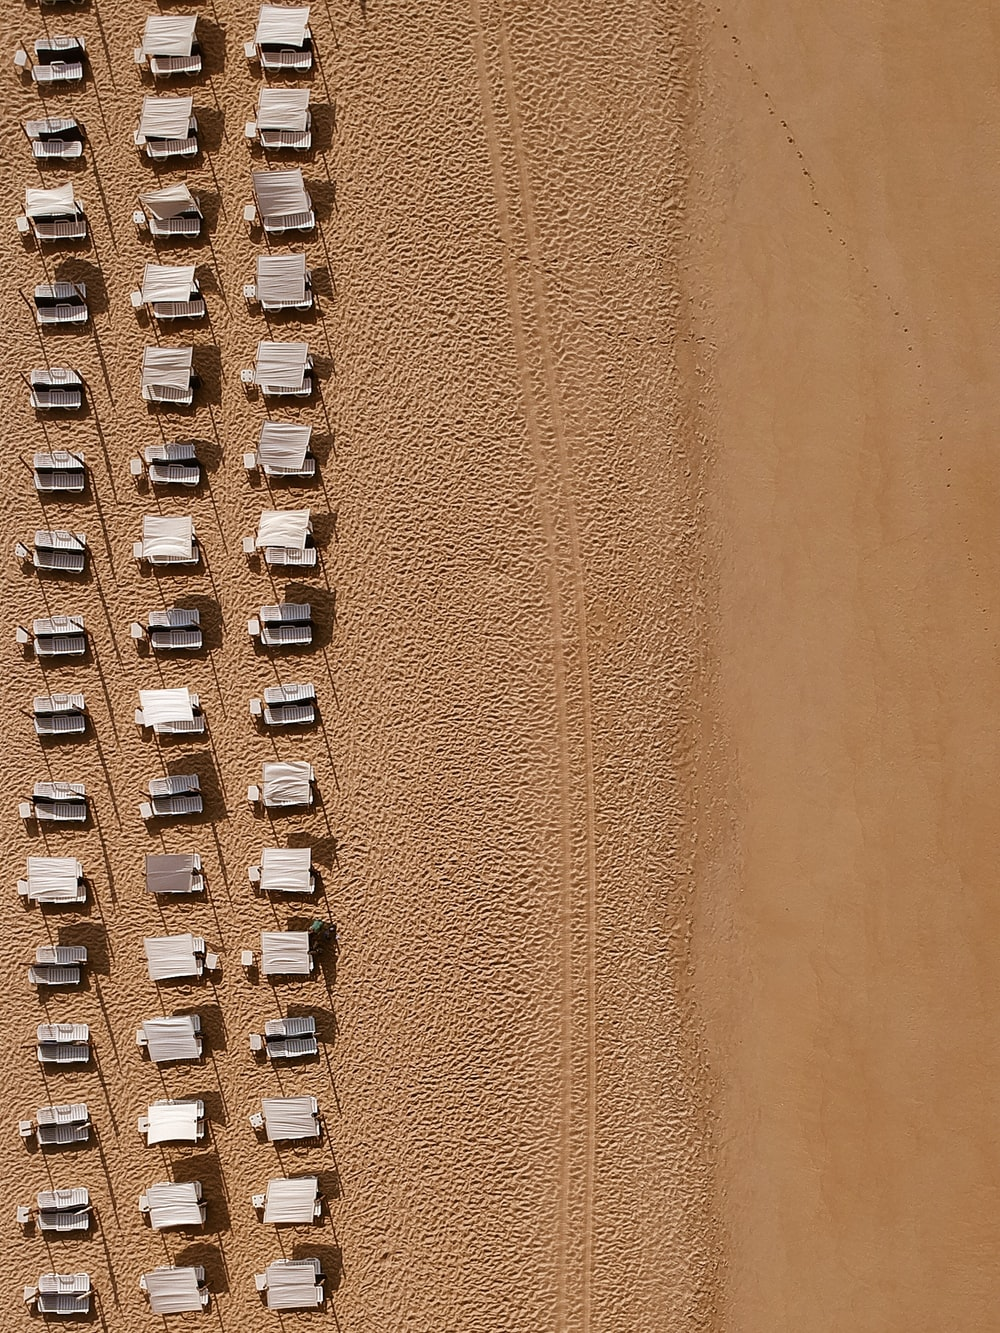 aerial photography of sunloungers